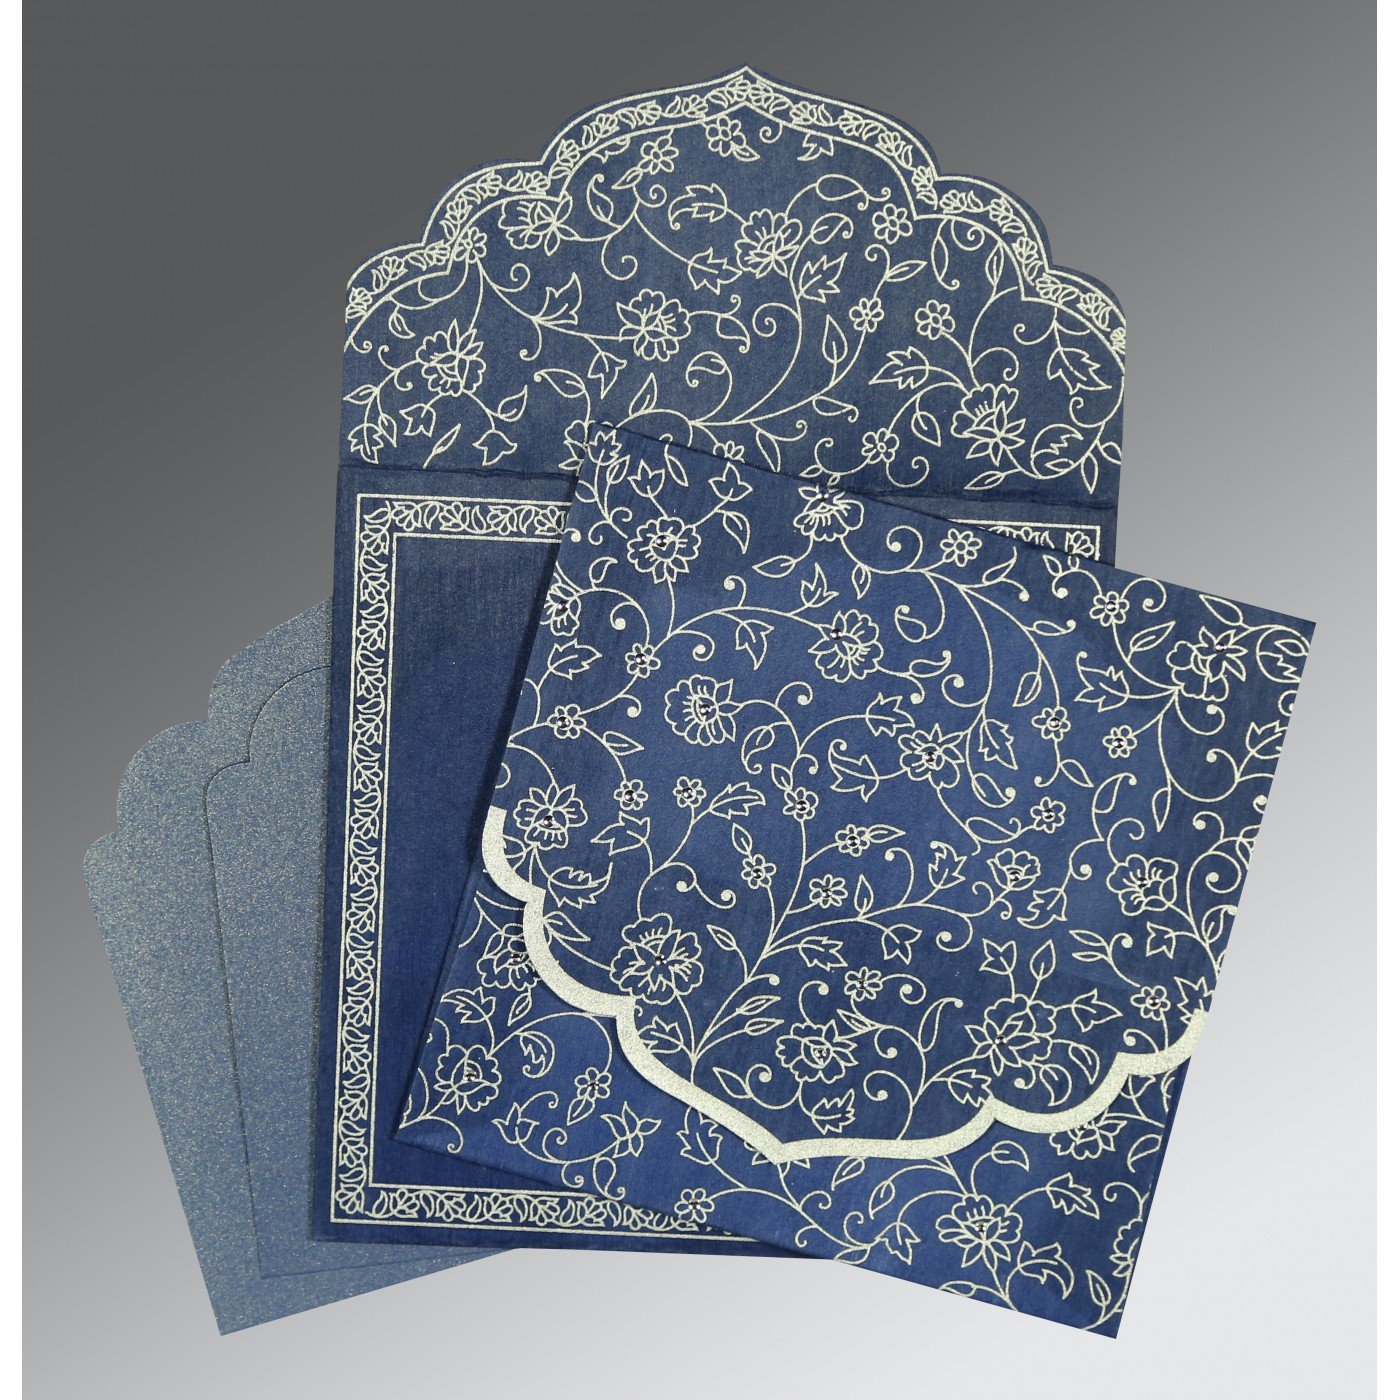 COBALT BLUE WOOLY FLORAL THEMED - SCREEN PRINTED WEDDING INVITATION : C-8211P - 123WeddingCards